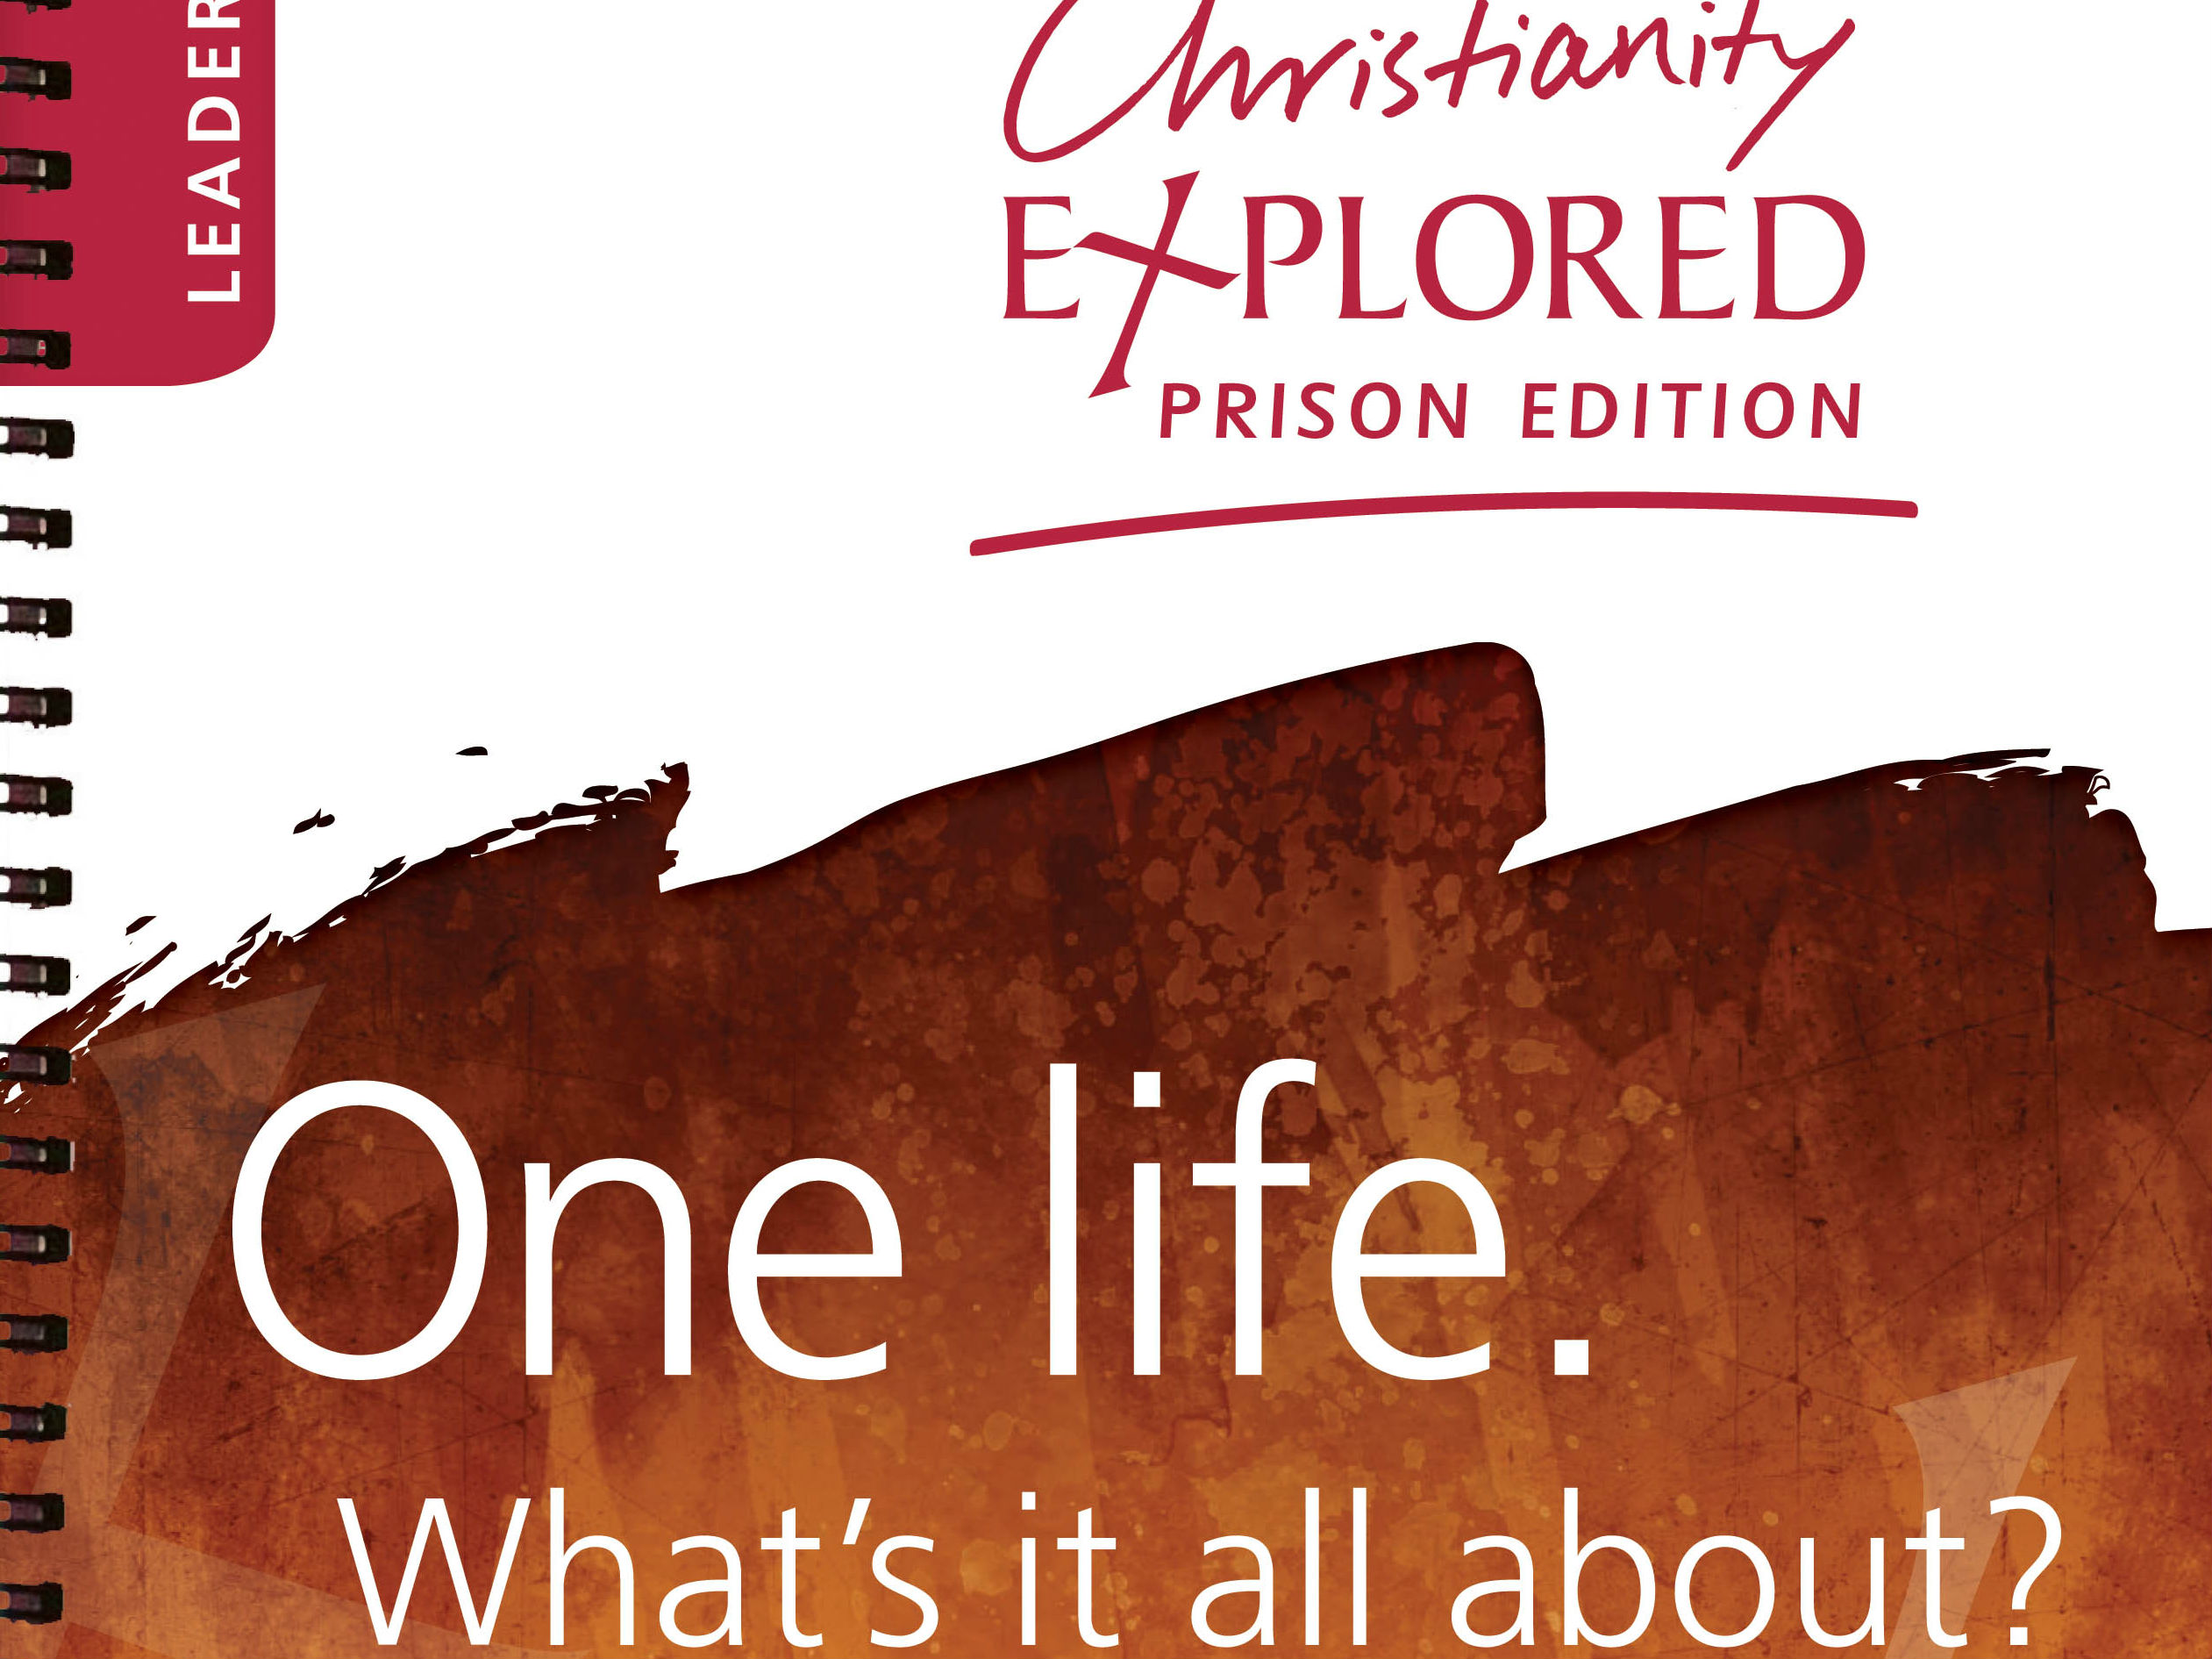 Christianity Explored to reach one million prisoners